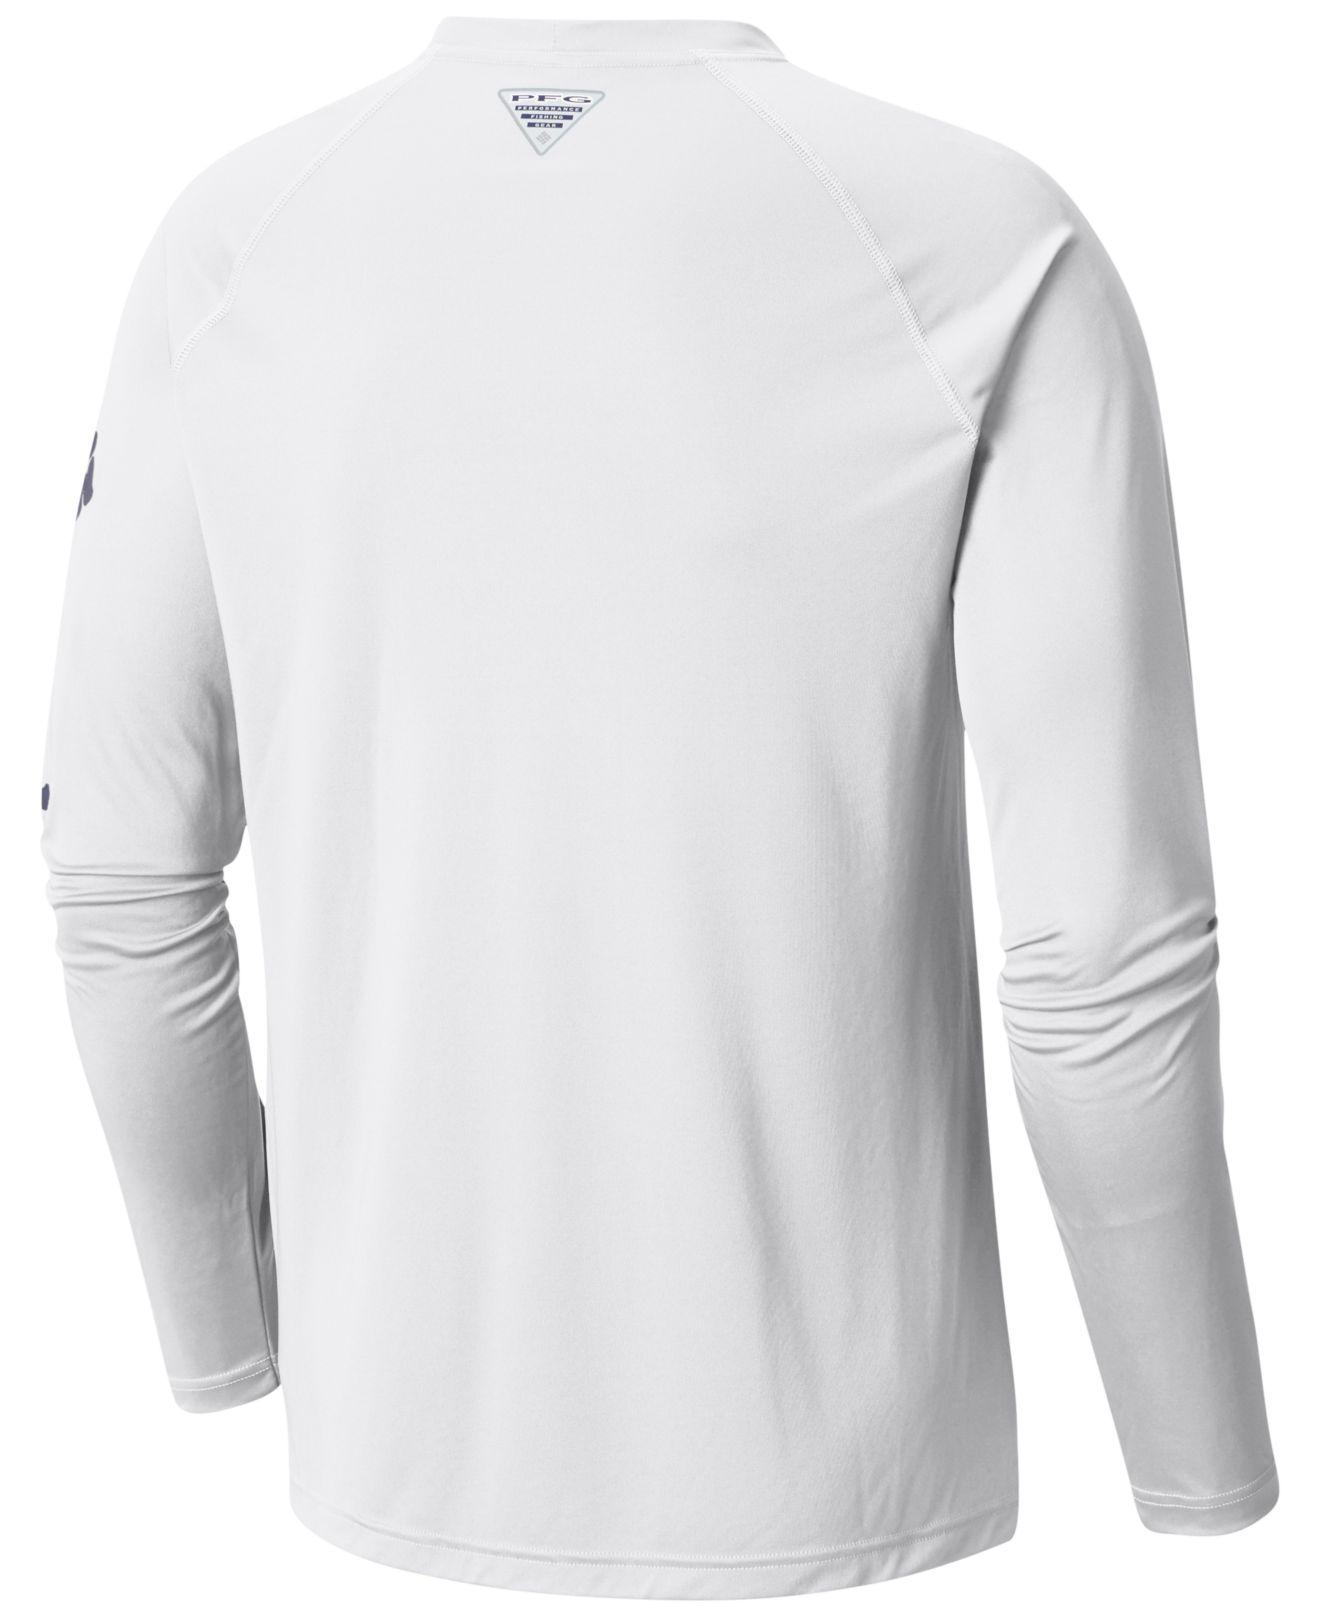 3cc5e910a86 Lyst - Columbia Terminal Tackle Ls Shirt in White for Men